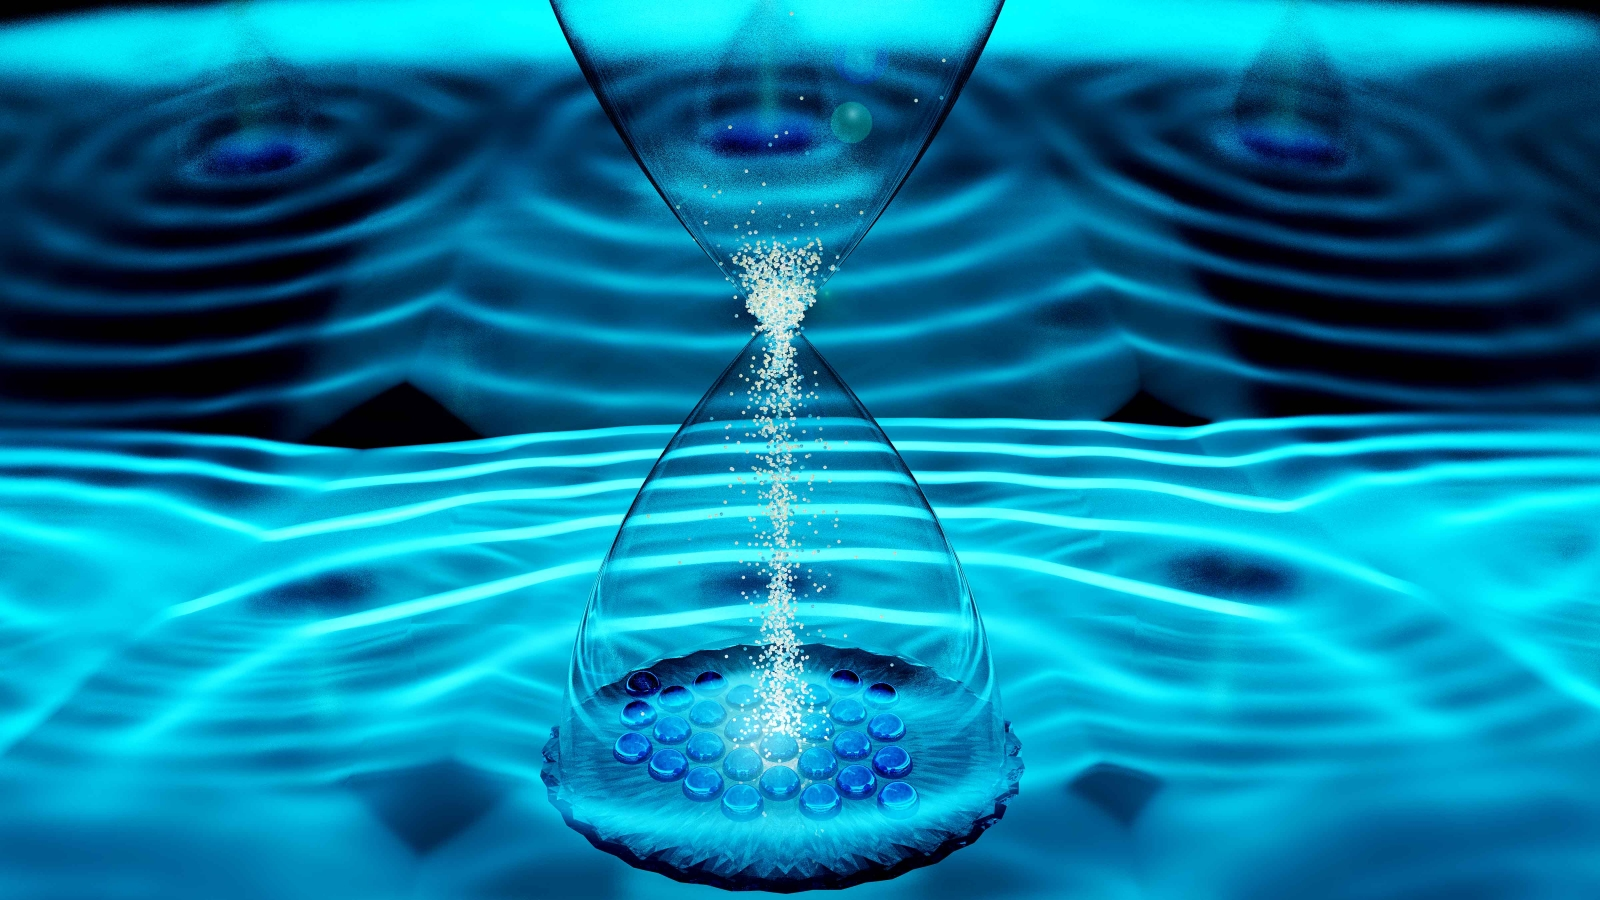 Scientists create new form of matter that breaks the laws of physics